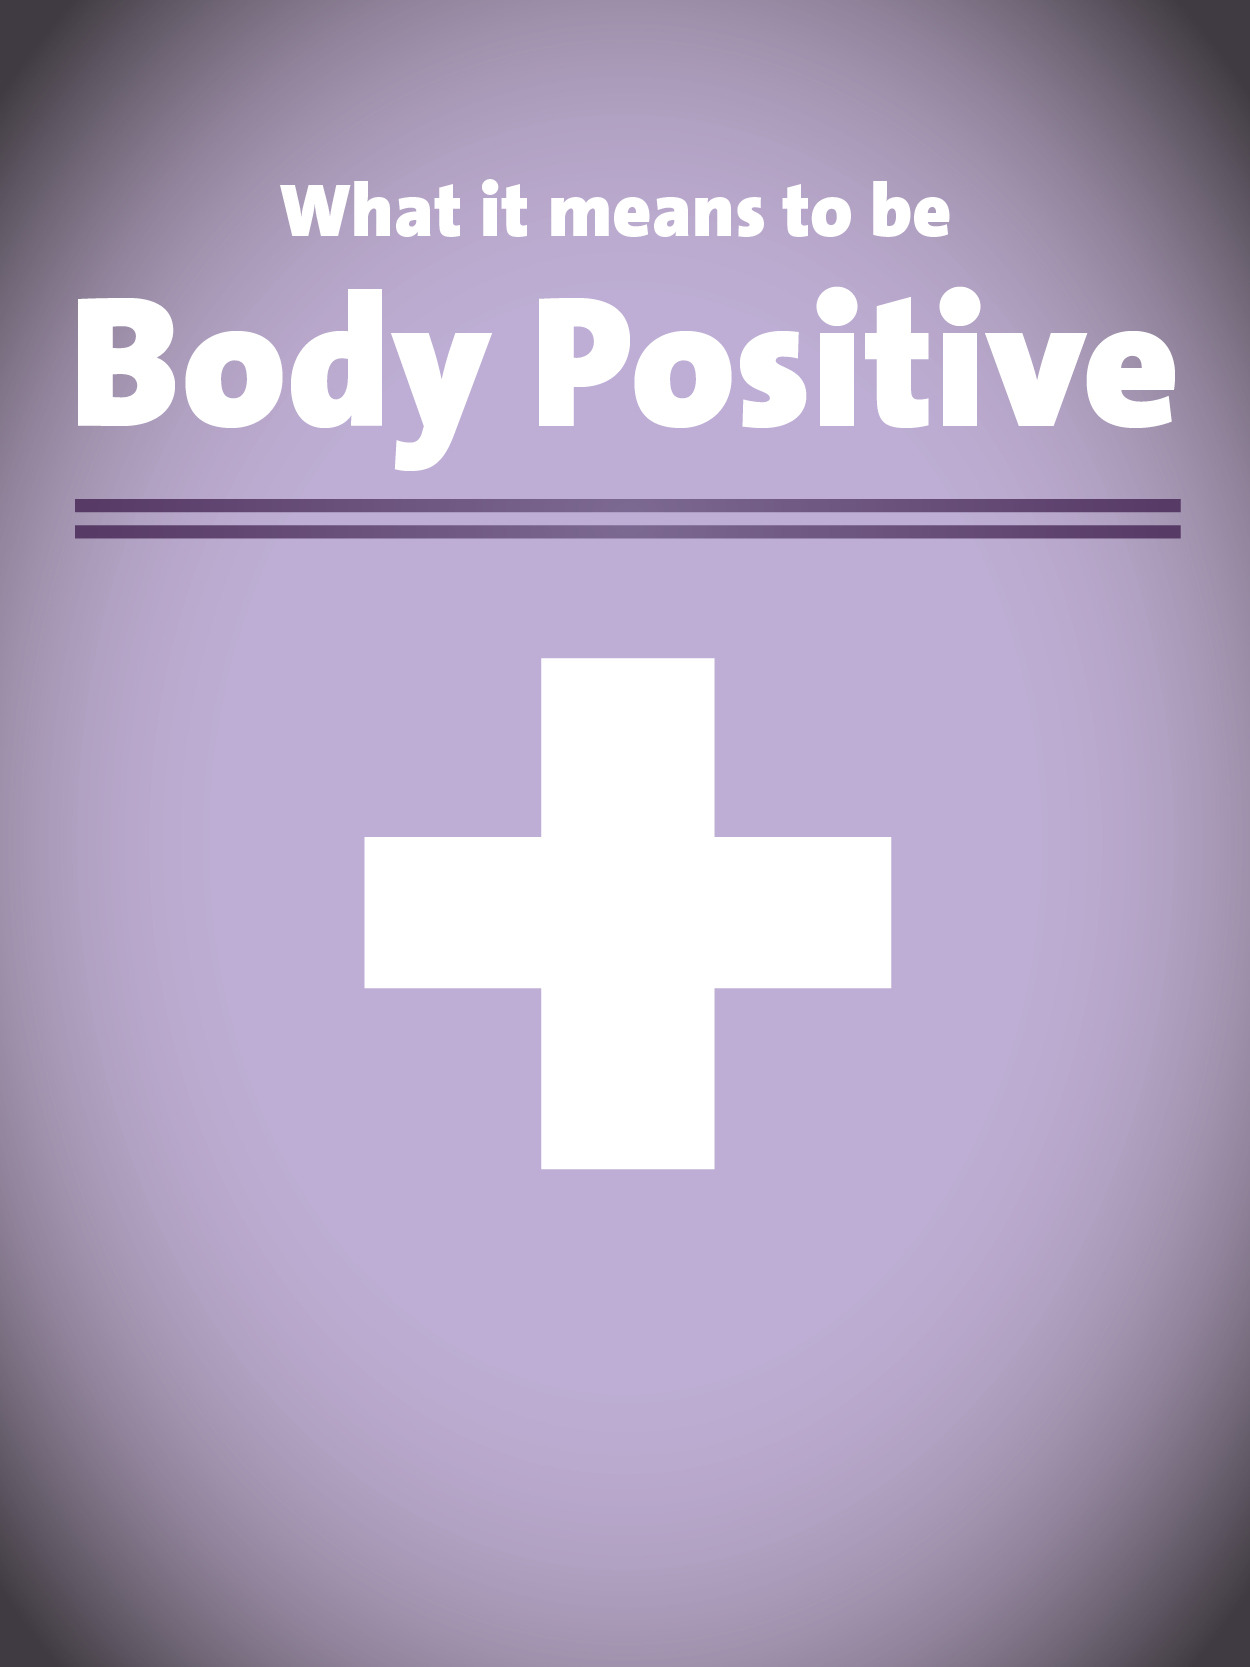 sabrina-volante:  A helpful starting guide to body positivity.